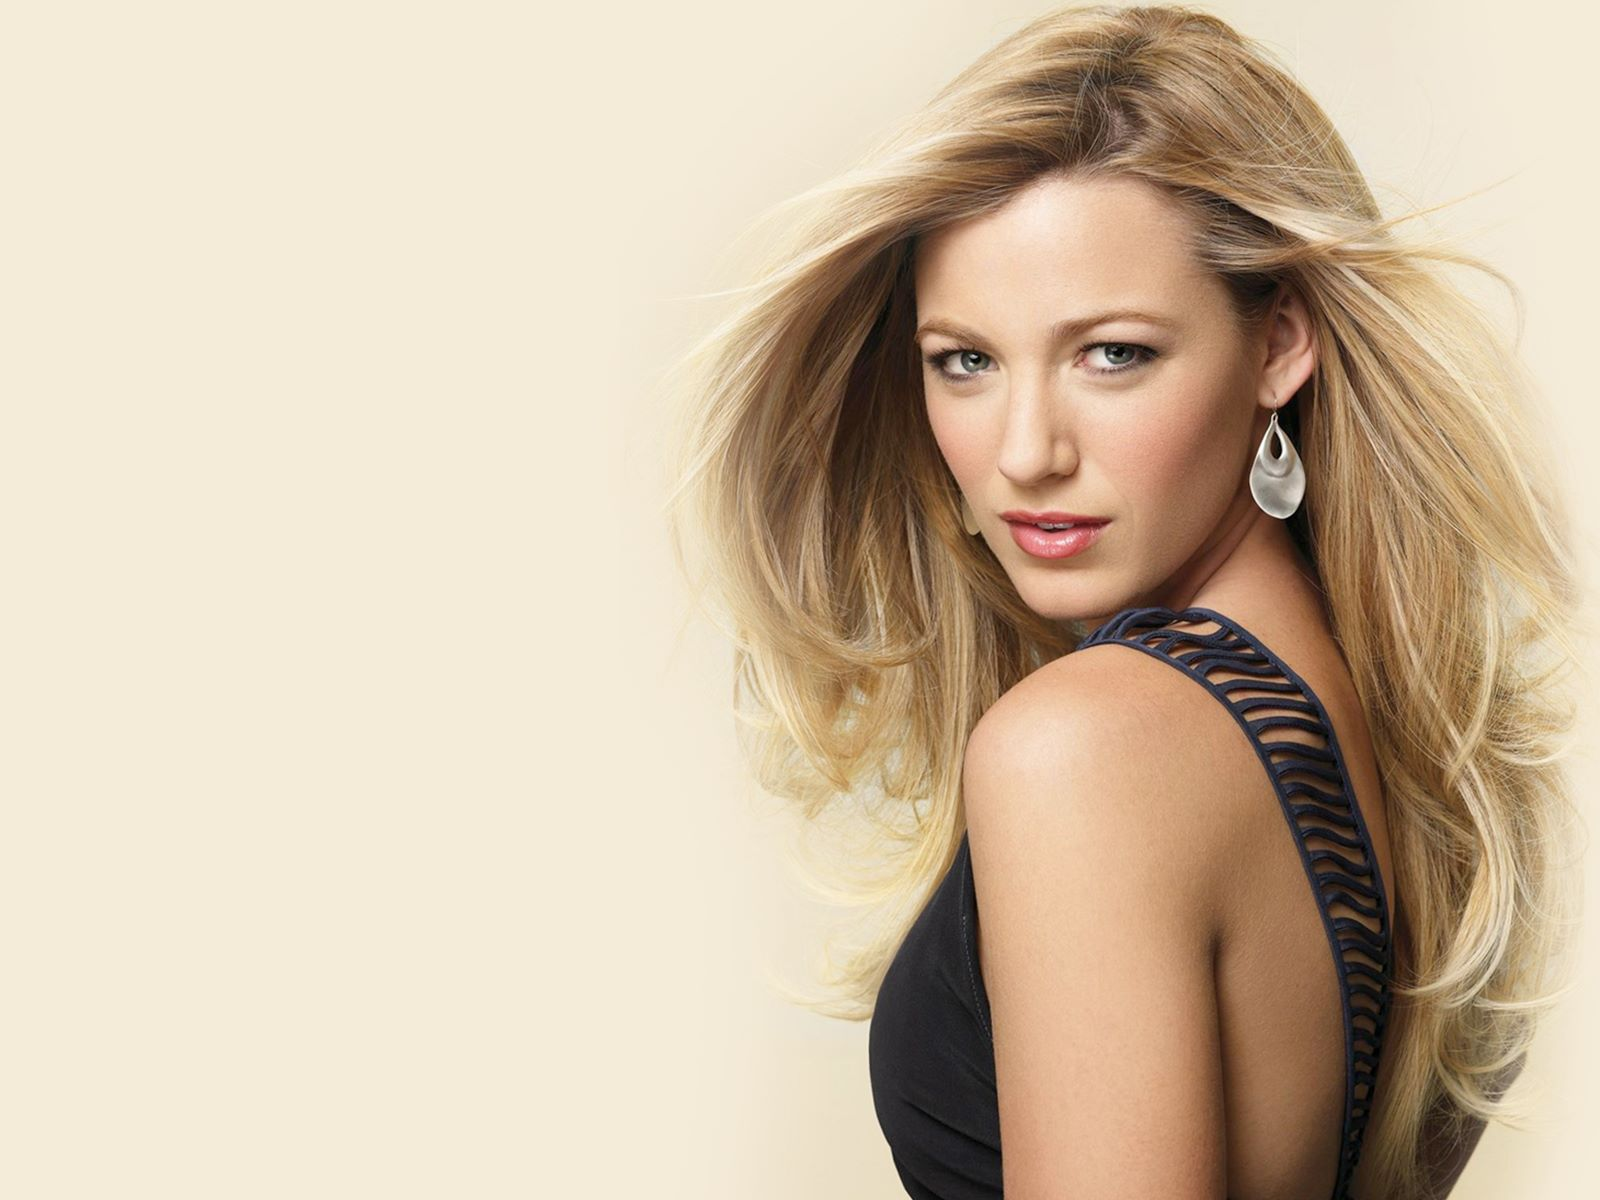 lovely blake lively style mobile download free background hd images